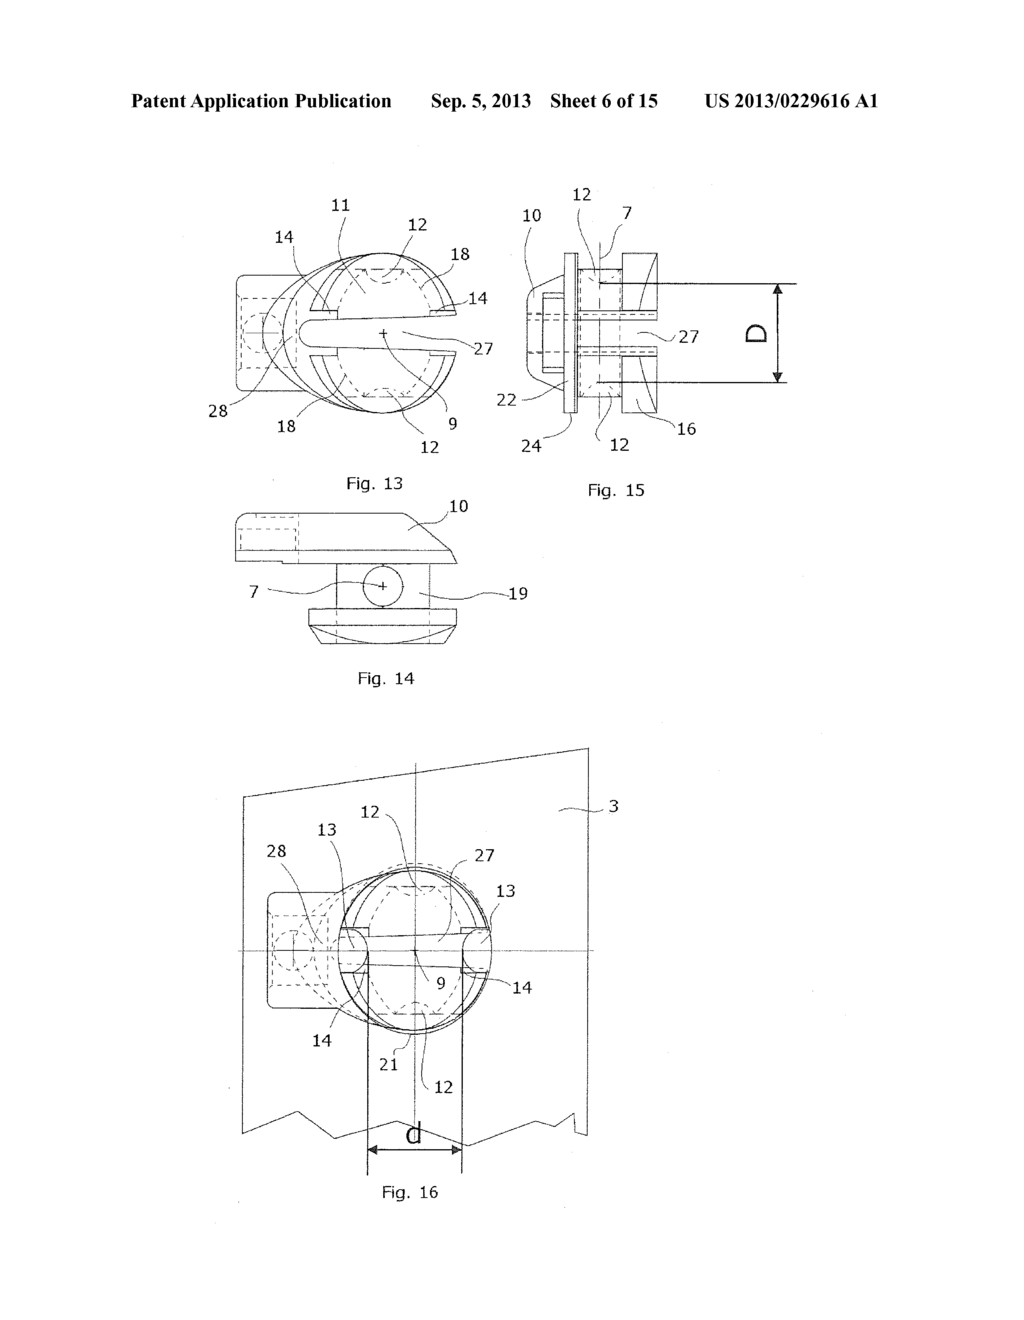 compression force diagram. spectacles frame with arms mounting by pivoting about a hinge knuckle while applying compression force - diagram, schematic, and image 07 compression force diagram r